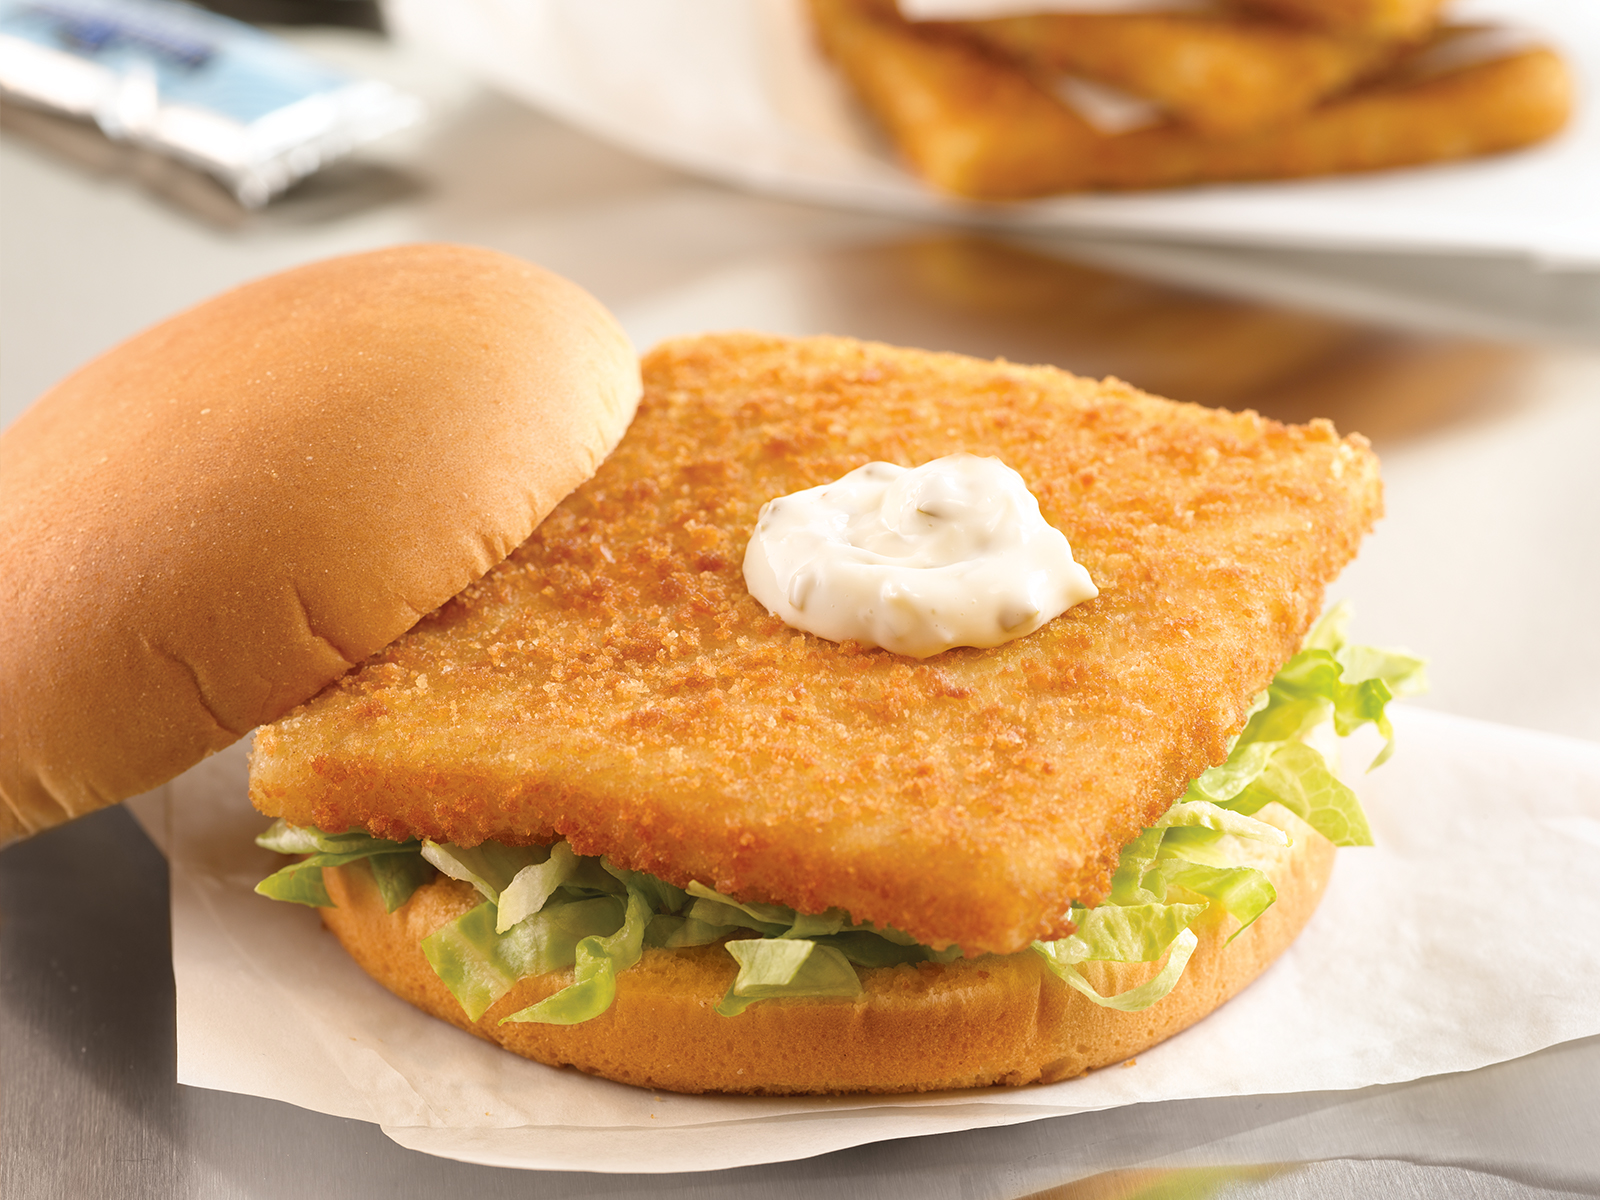 Cod Square Portions 4 oz Raw Breaded (1/10 lb) 412970